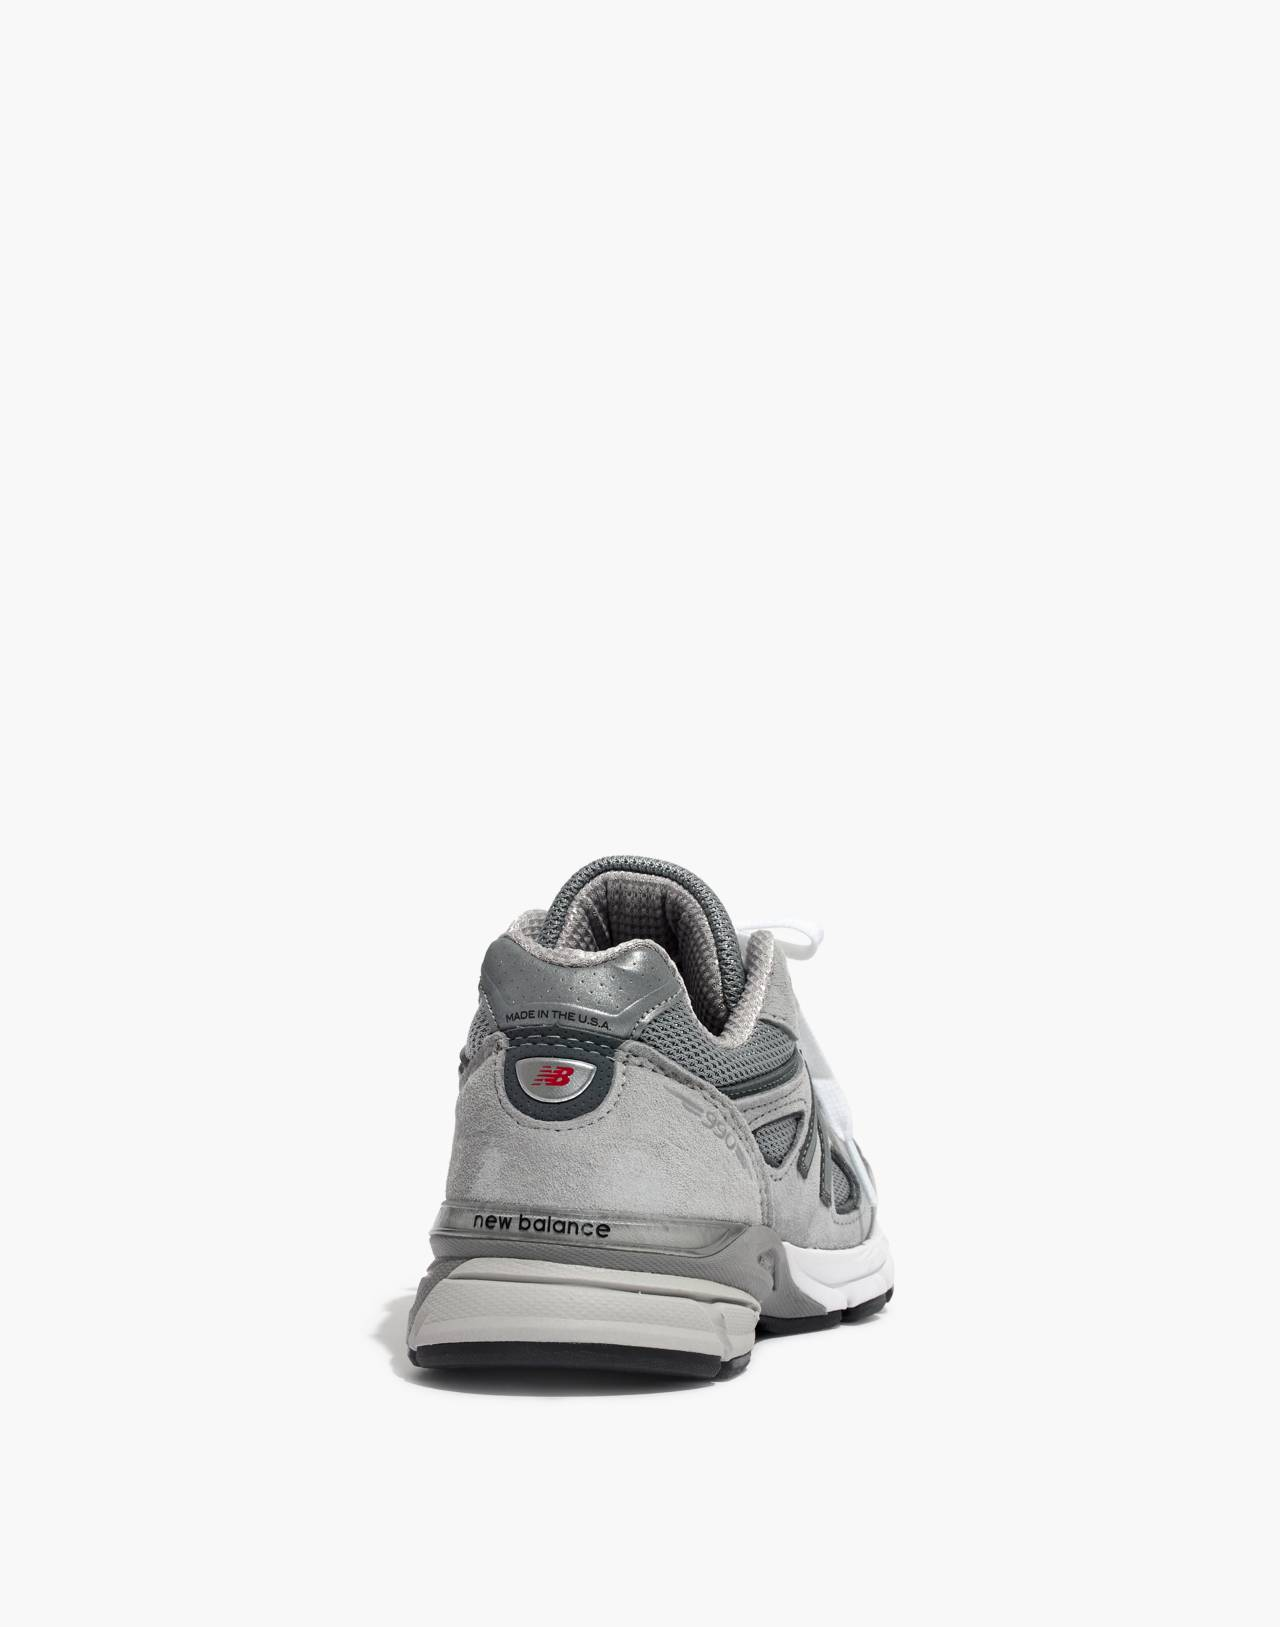 New Balance® 990v4 Sneakers in grey/castle rock image 4